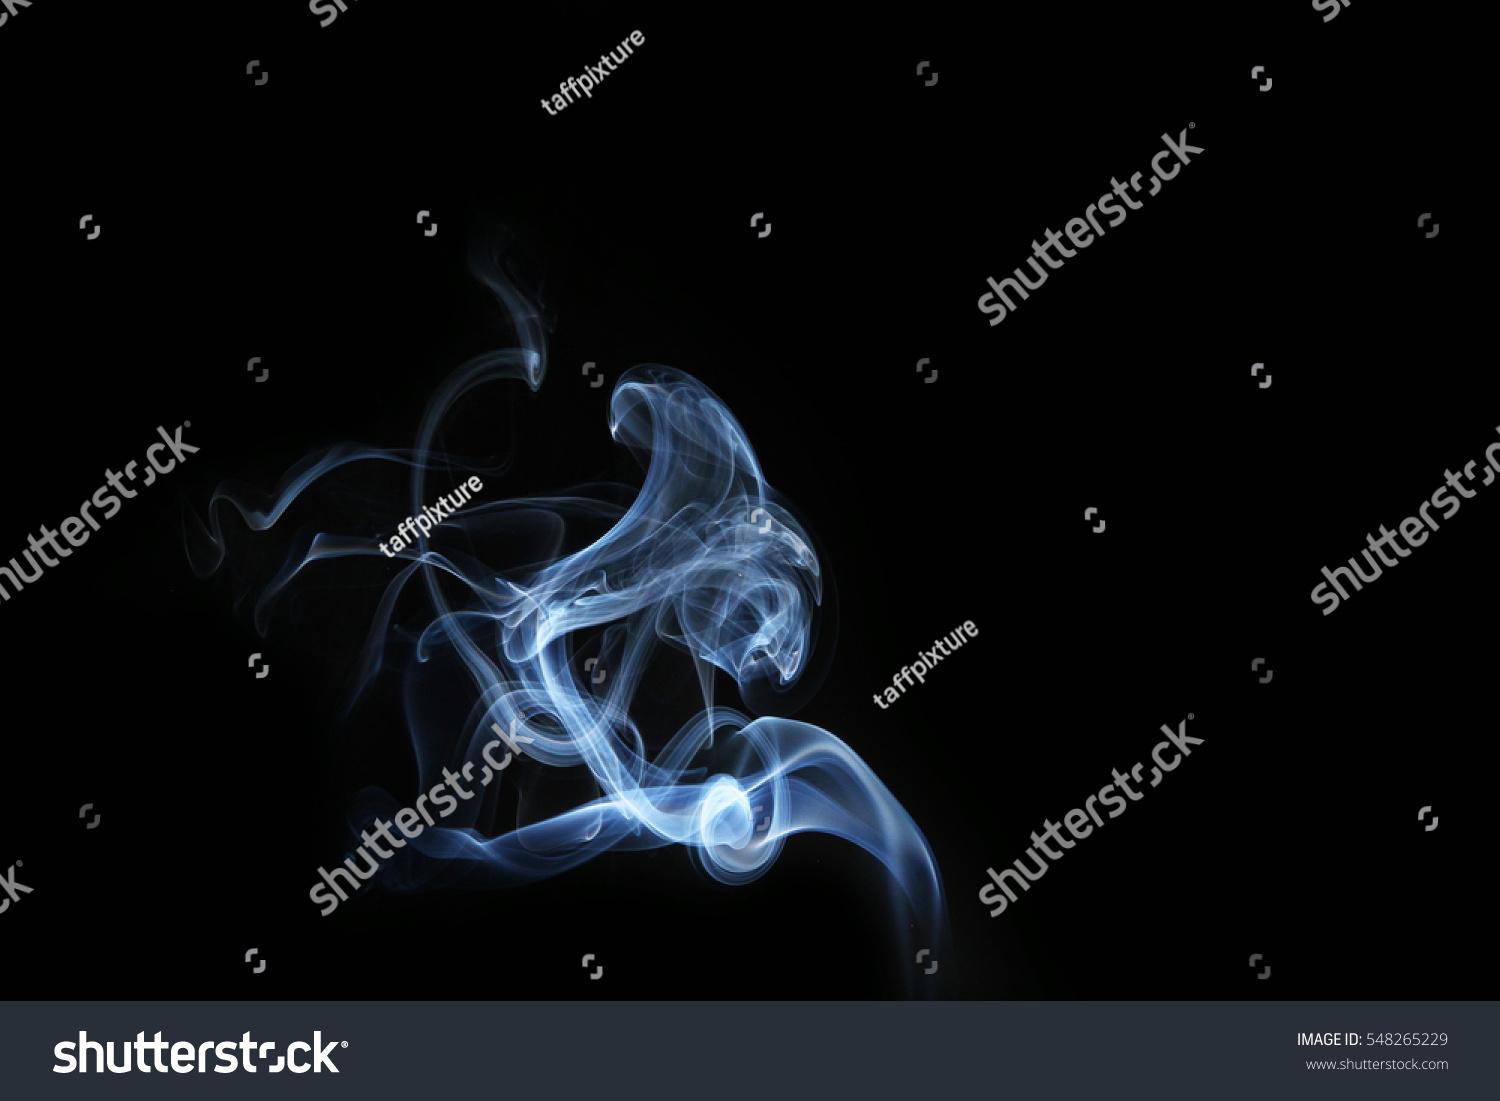 Smoke Wallpaper Is An Aerosol Or Mist Of Solid Particles